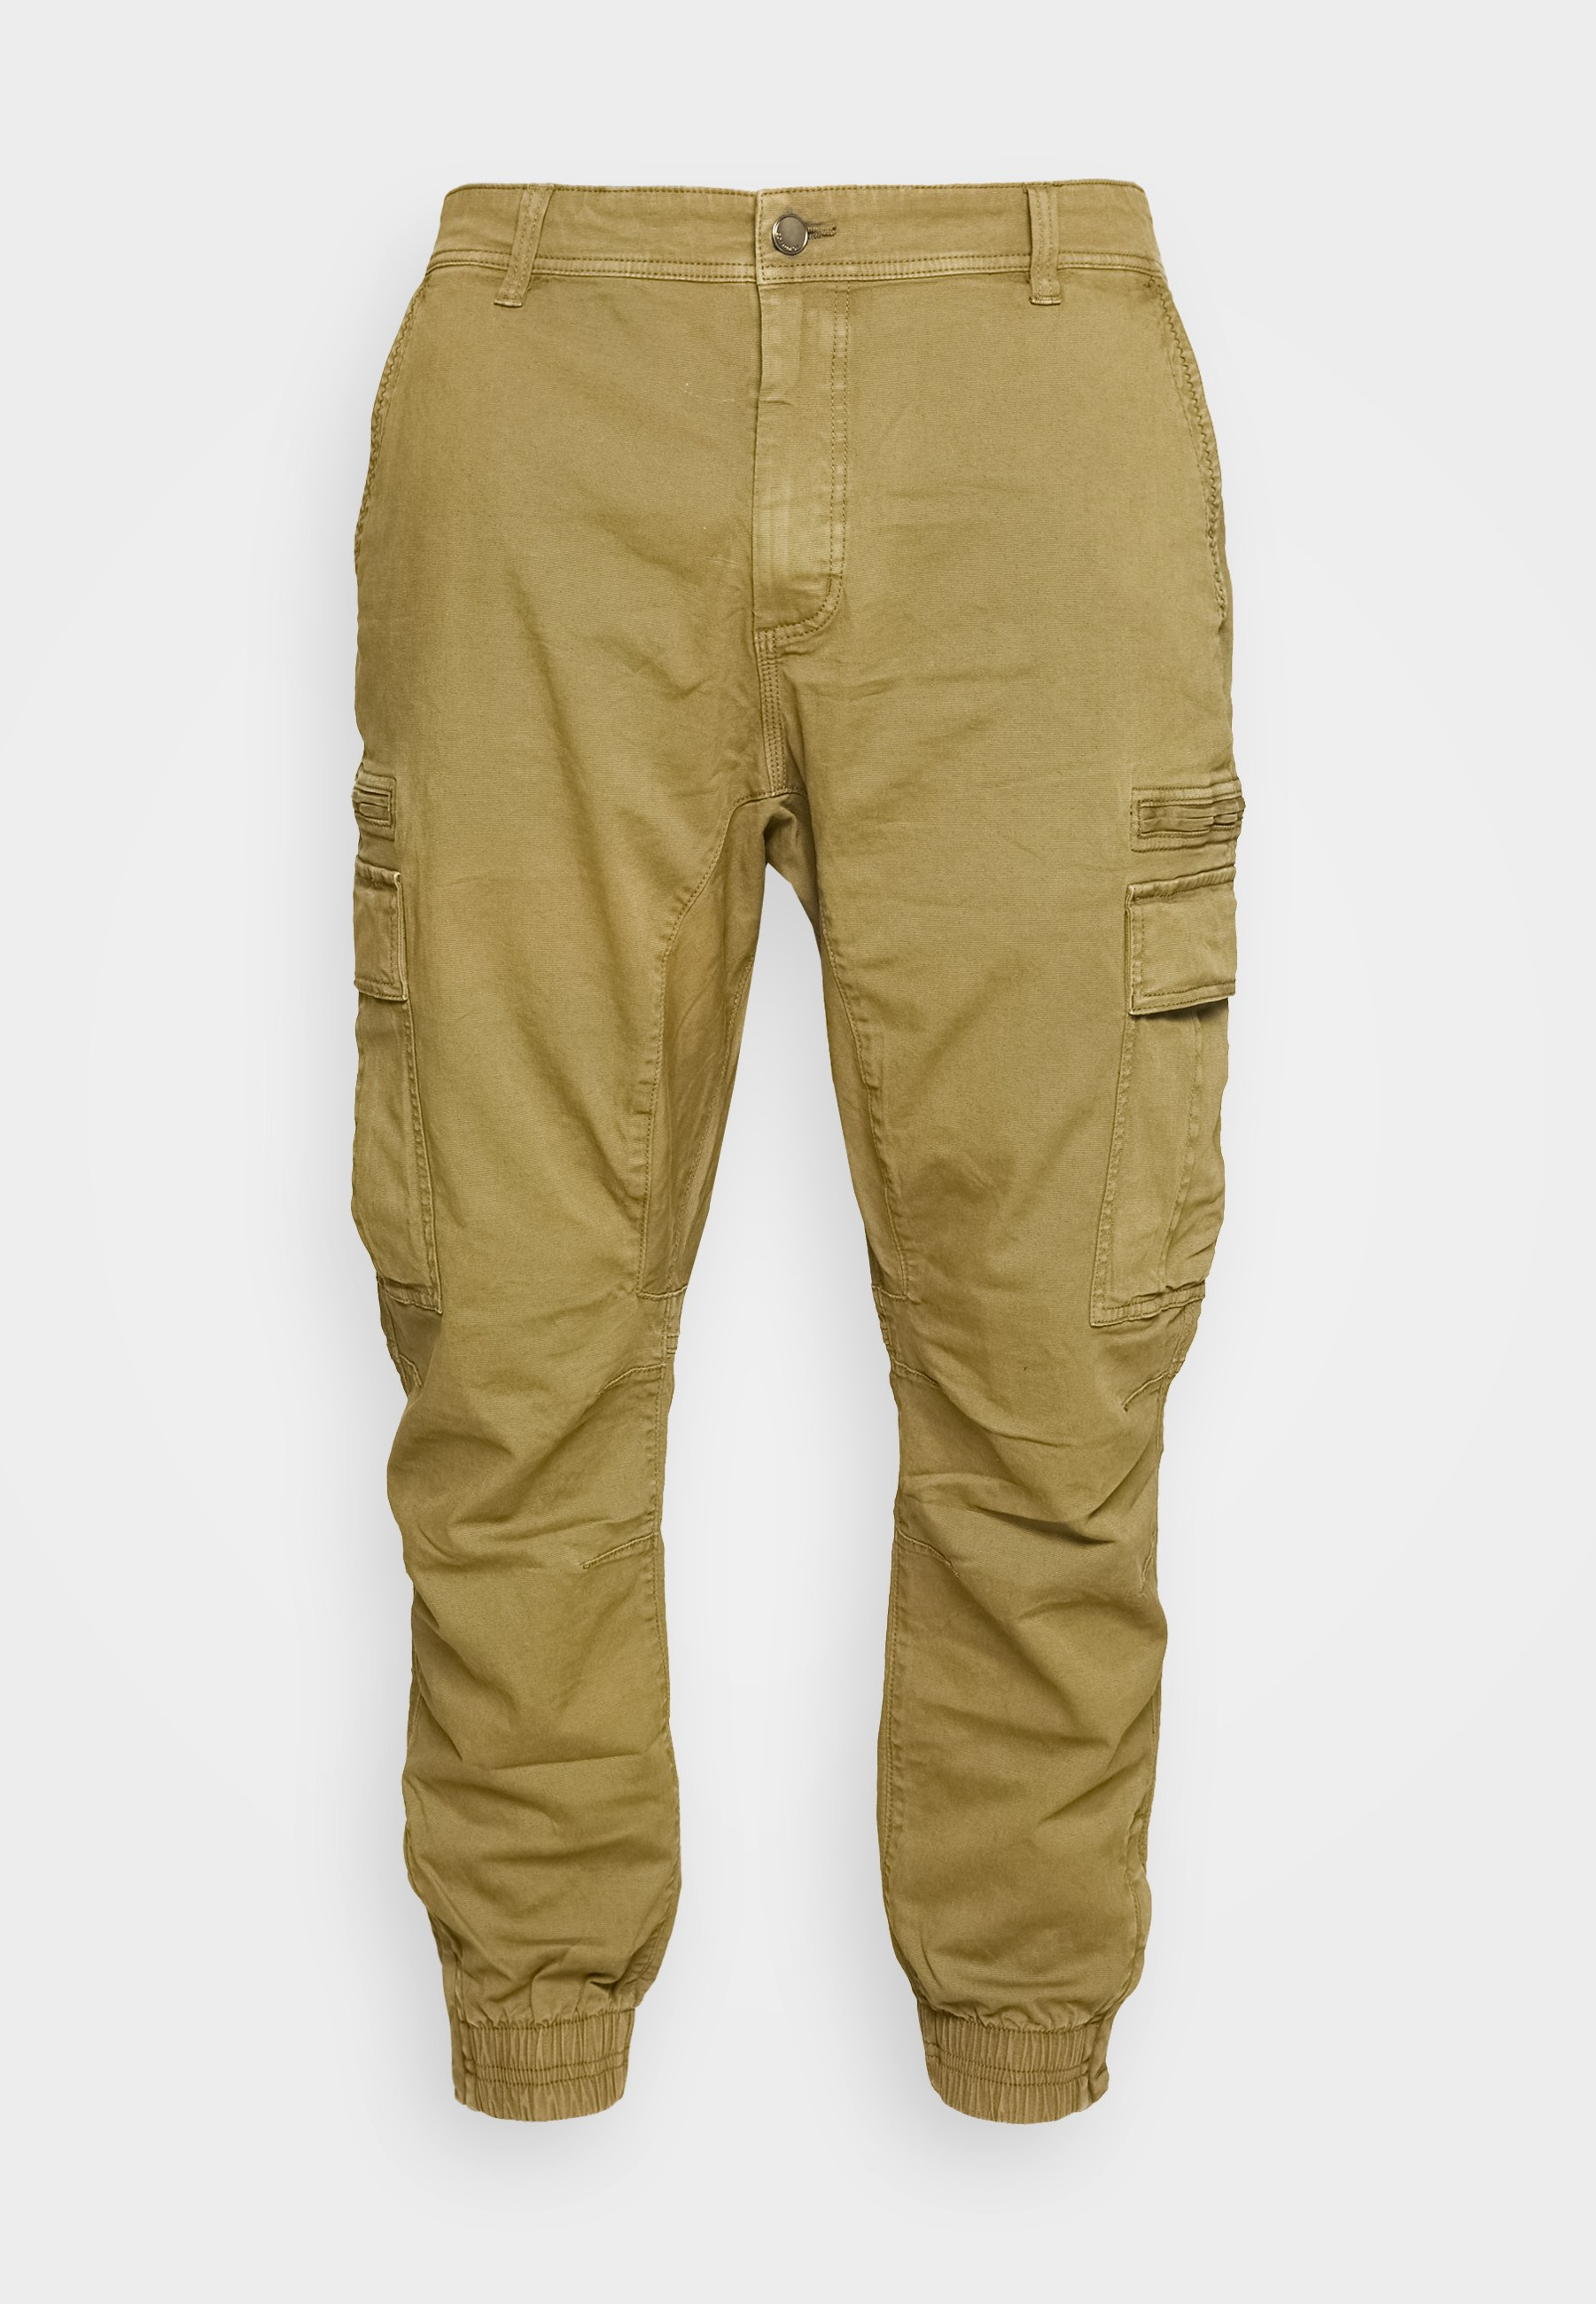 Cotton On Urban Jogger Plus - Cargobukse Duster Khaki/oliven